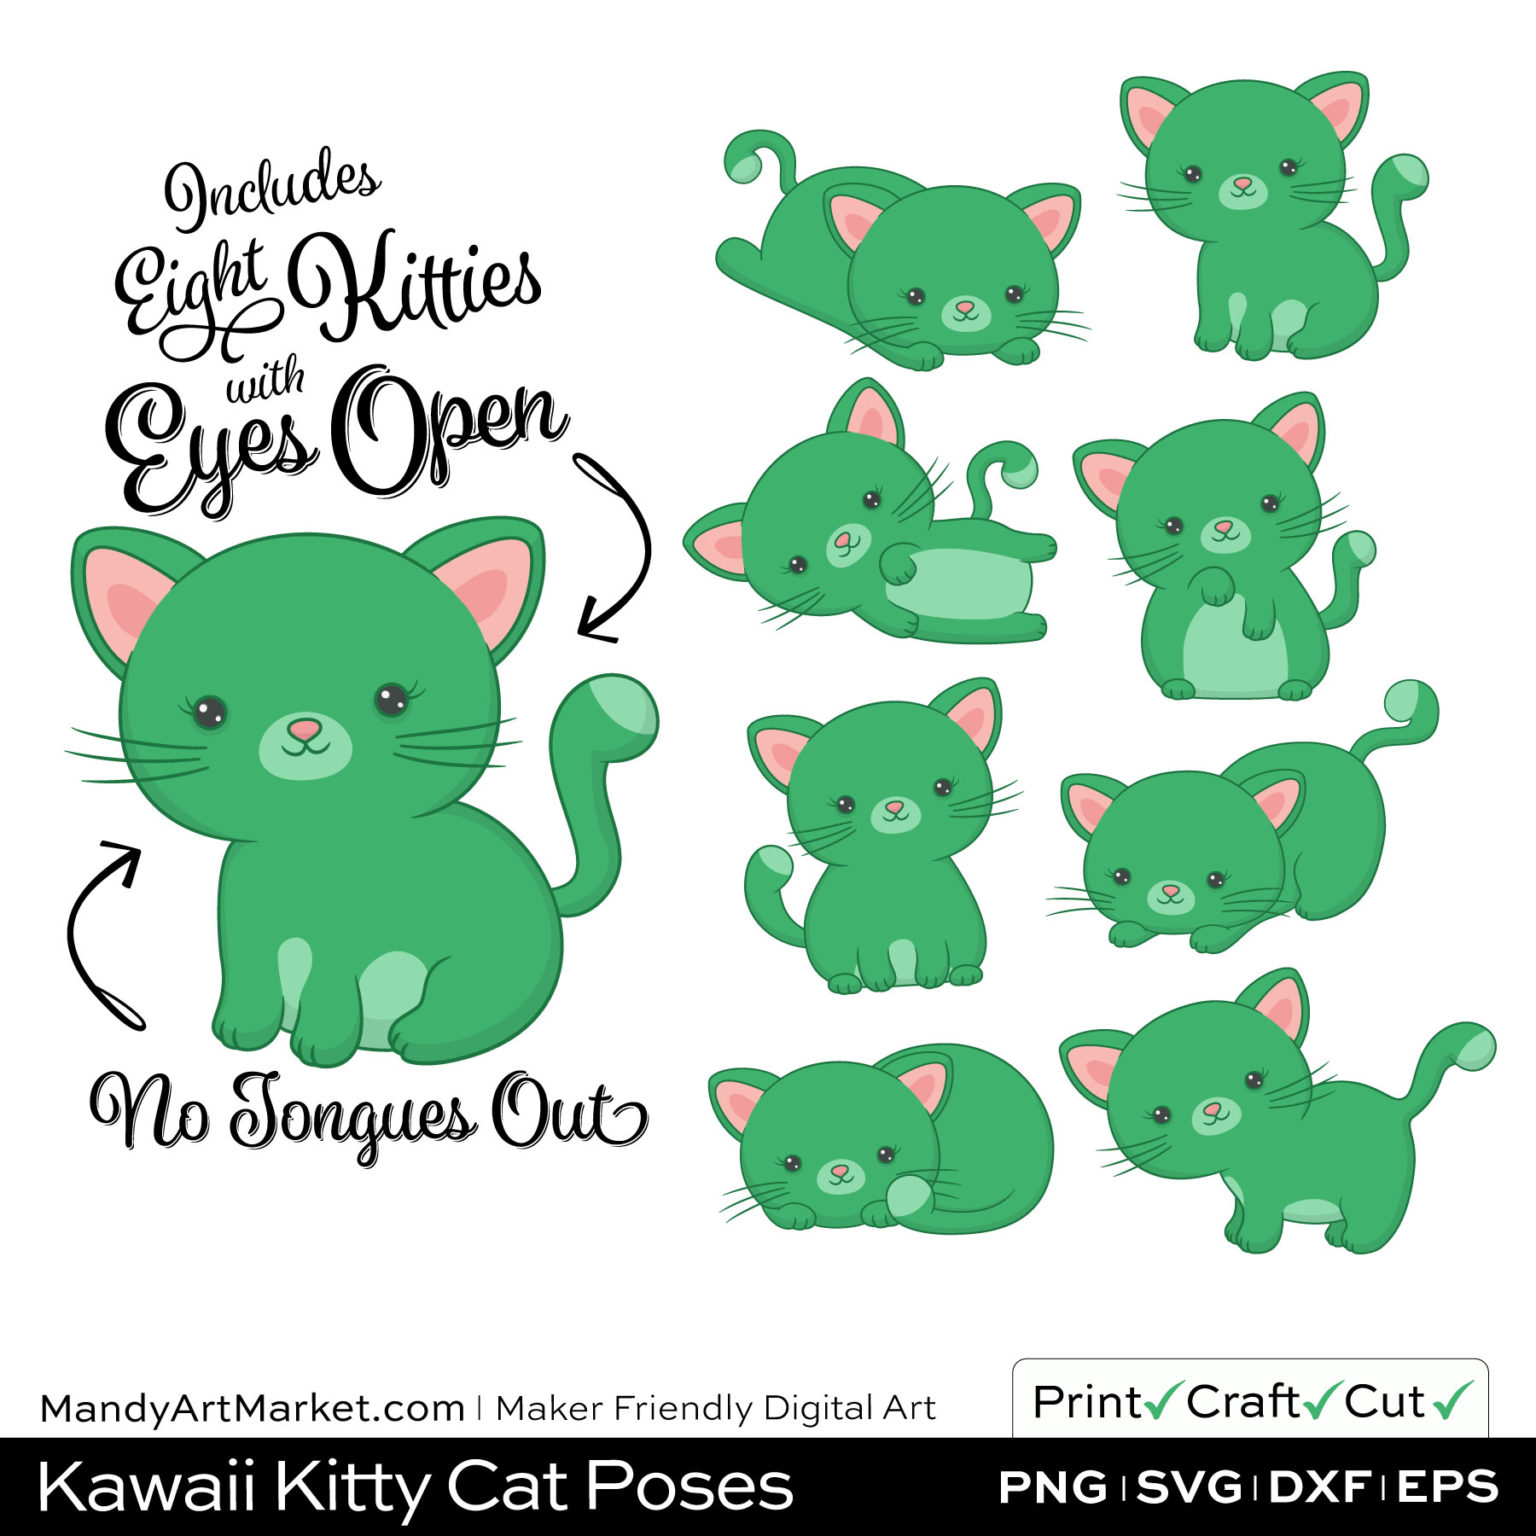 Kelly Green Kawaii Kitty Cat Poses Clipart on Wood Background